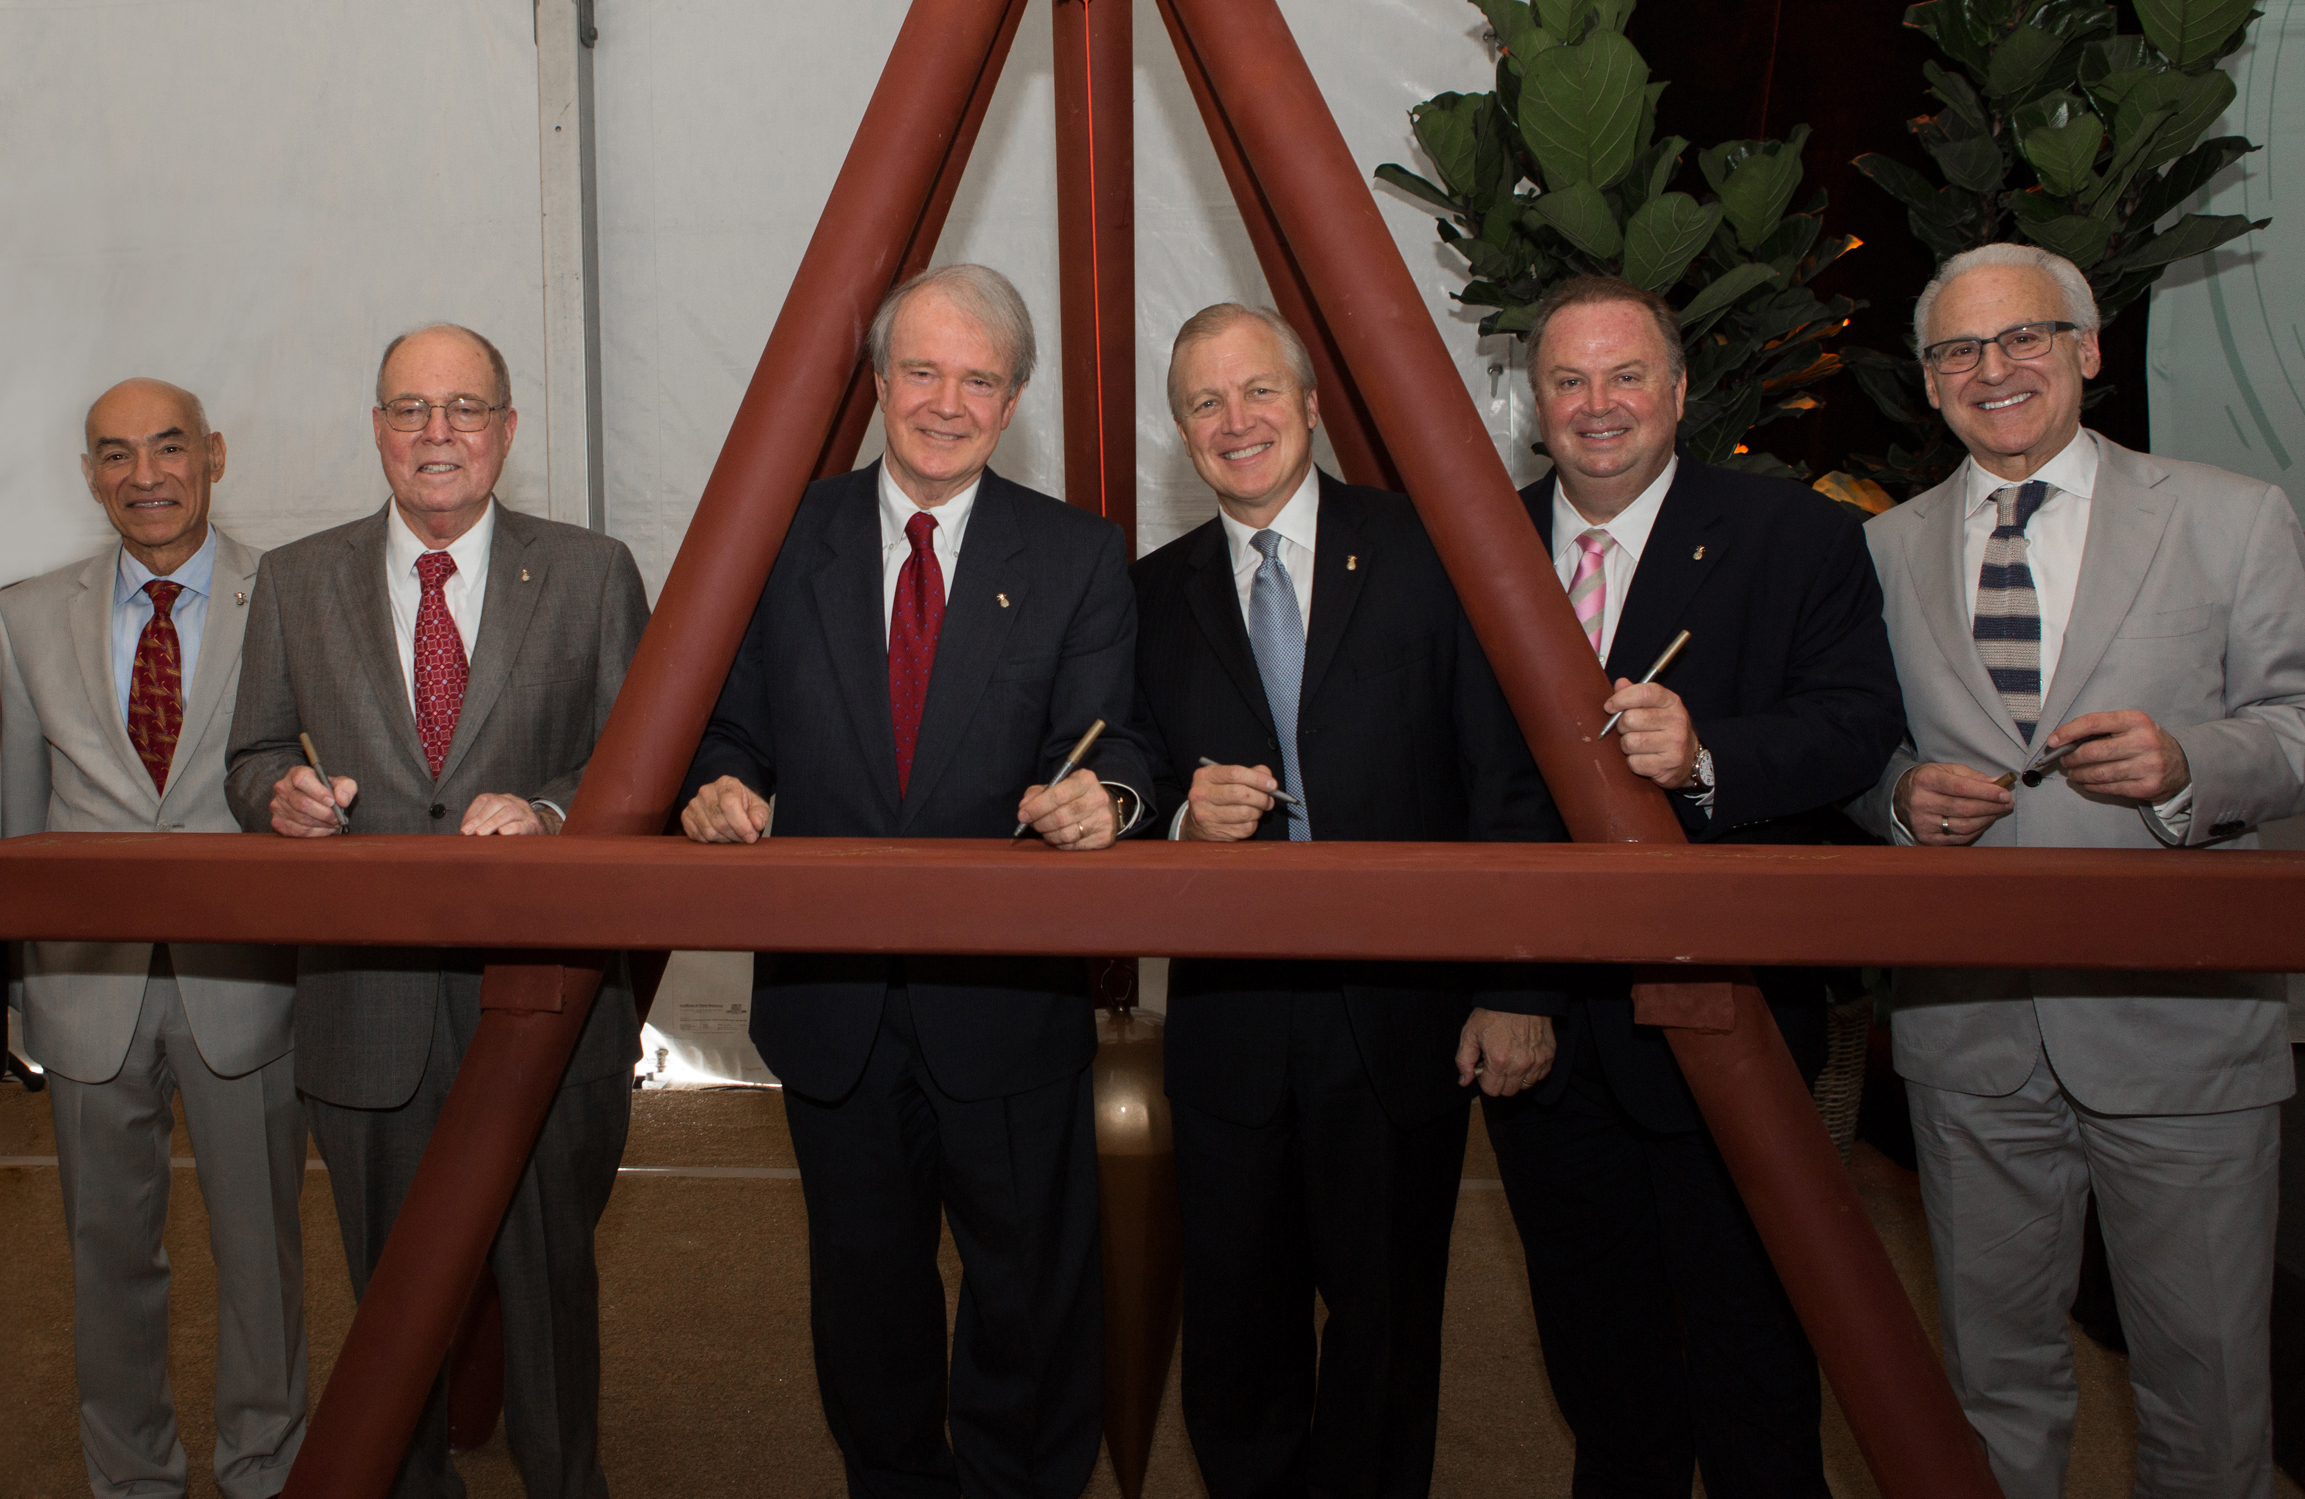 Miami Cancer Institute: Signing the installation art are, from left, Bill Banchs, CEO of Baptist Health South Florida Foundation, Lawrence Kahn, board member of Baptist Hospital of Miami, Brian Keeley, president and CEO of Baptist Health South Florida, The Rev. Dr. William White, chairman of the board of Baptist Health South Florida, Wayne Brackin, executive vice president and chief operating officer, Baptist Health South Florida, and Leonard Kalman, M.D., who will serve as deputy director for Miami Cancer Institute. (Photo: Business Wire)